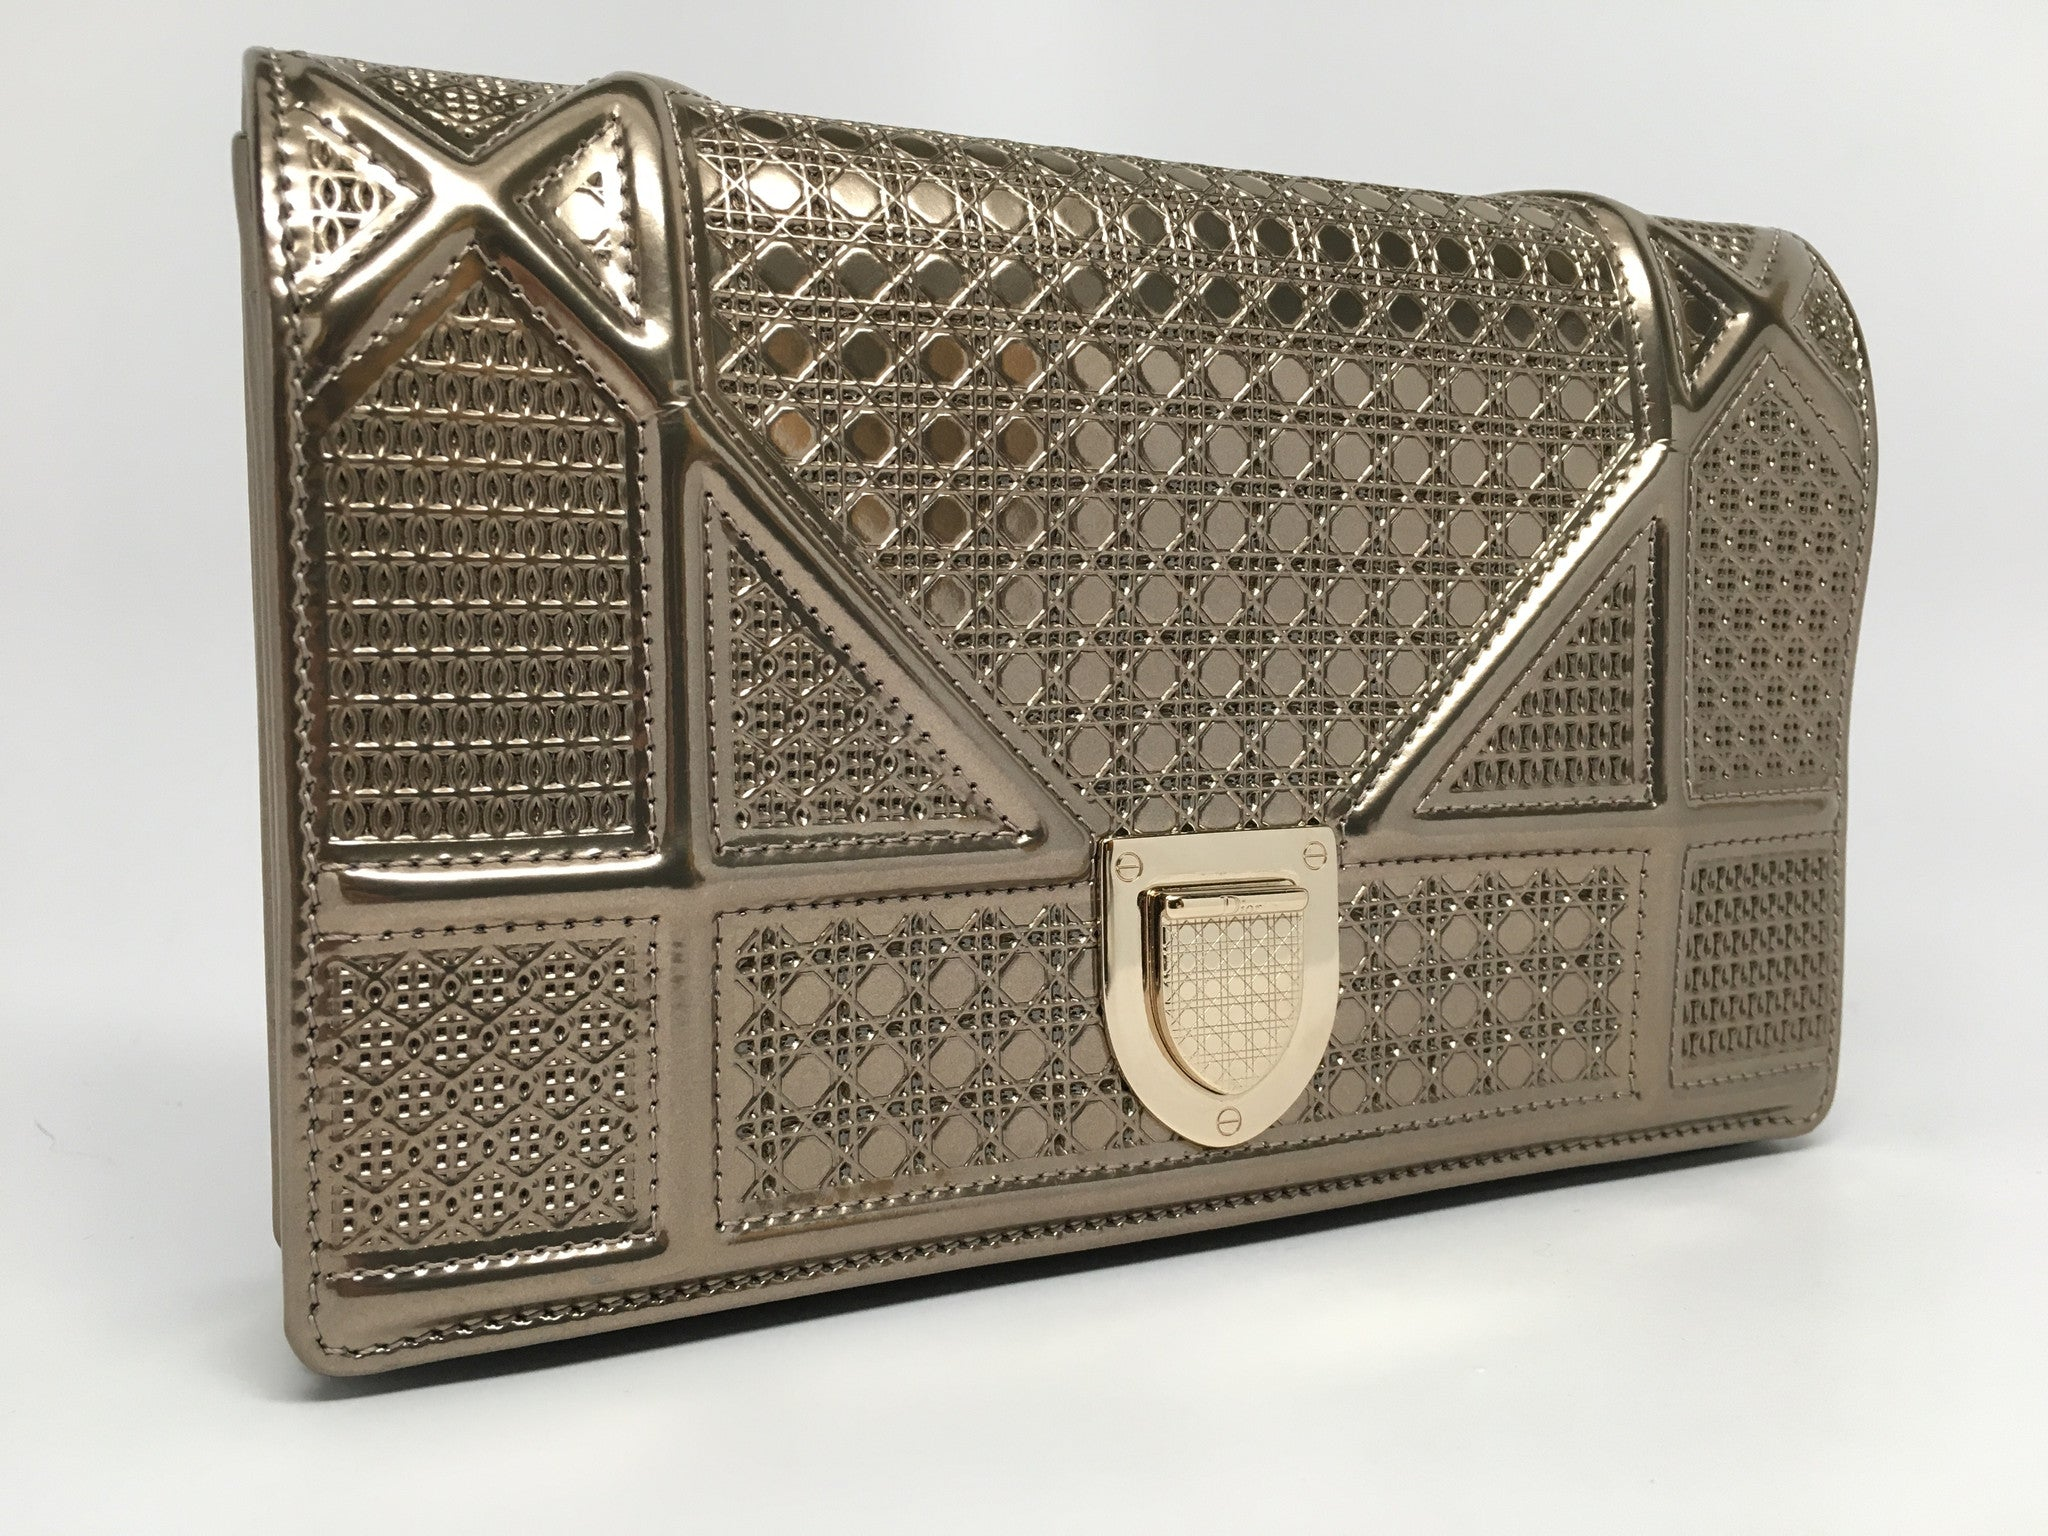 CHRISTIAN DIOR DIORAMA BAG IN CHAMPAGNE METALLIC CALFSKIN WITH MICRO-CANNAGE MOTIF